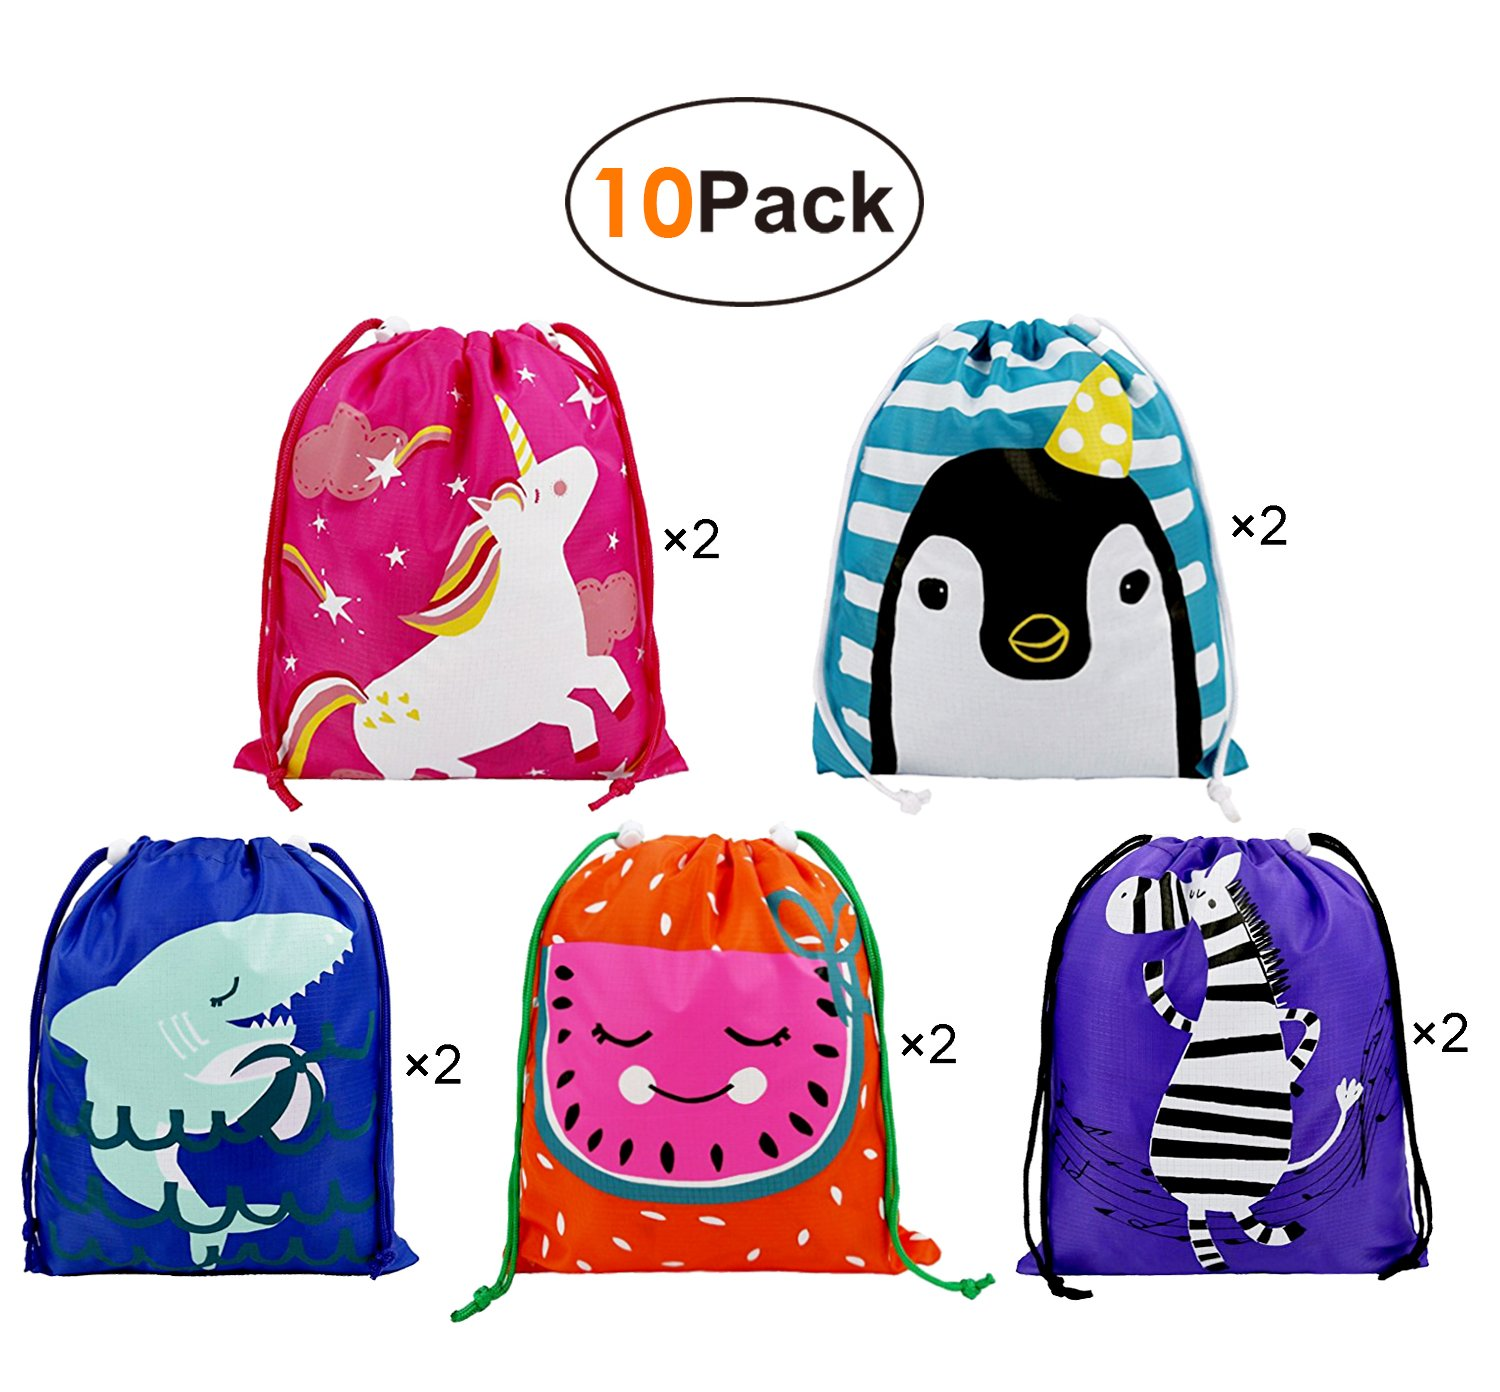 Party Bags Kids Birthday Favours Gift 10 Pack Ideas Candy Drawstring Pouch Goodie For Children Girls Boys Toddlers